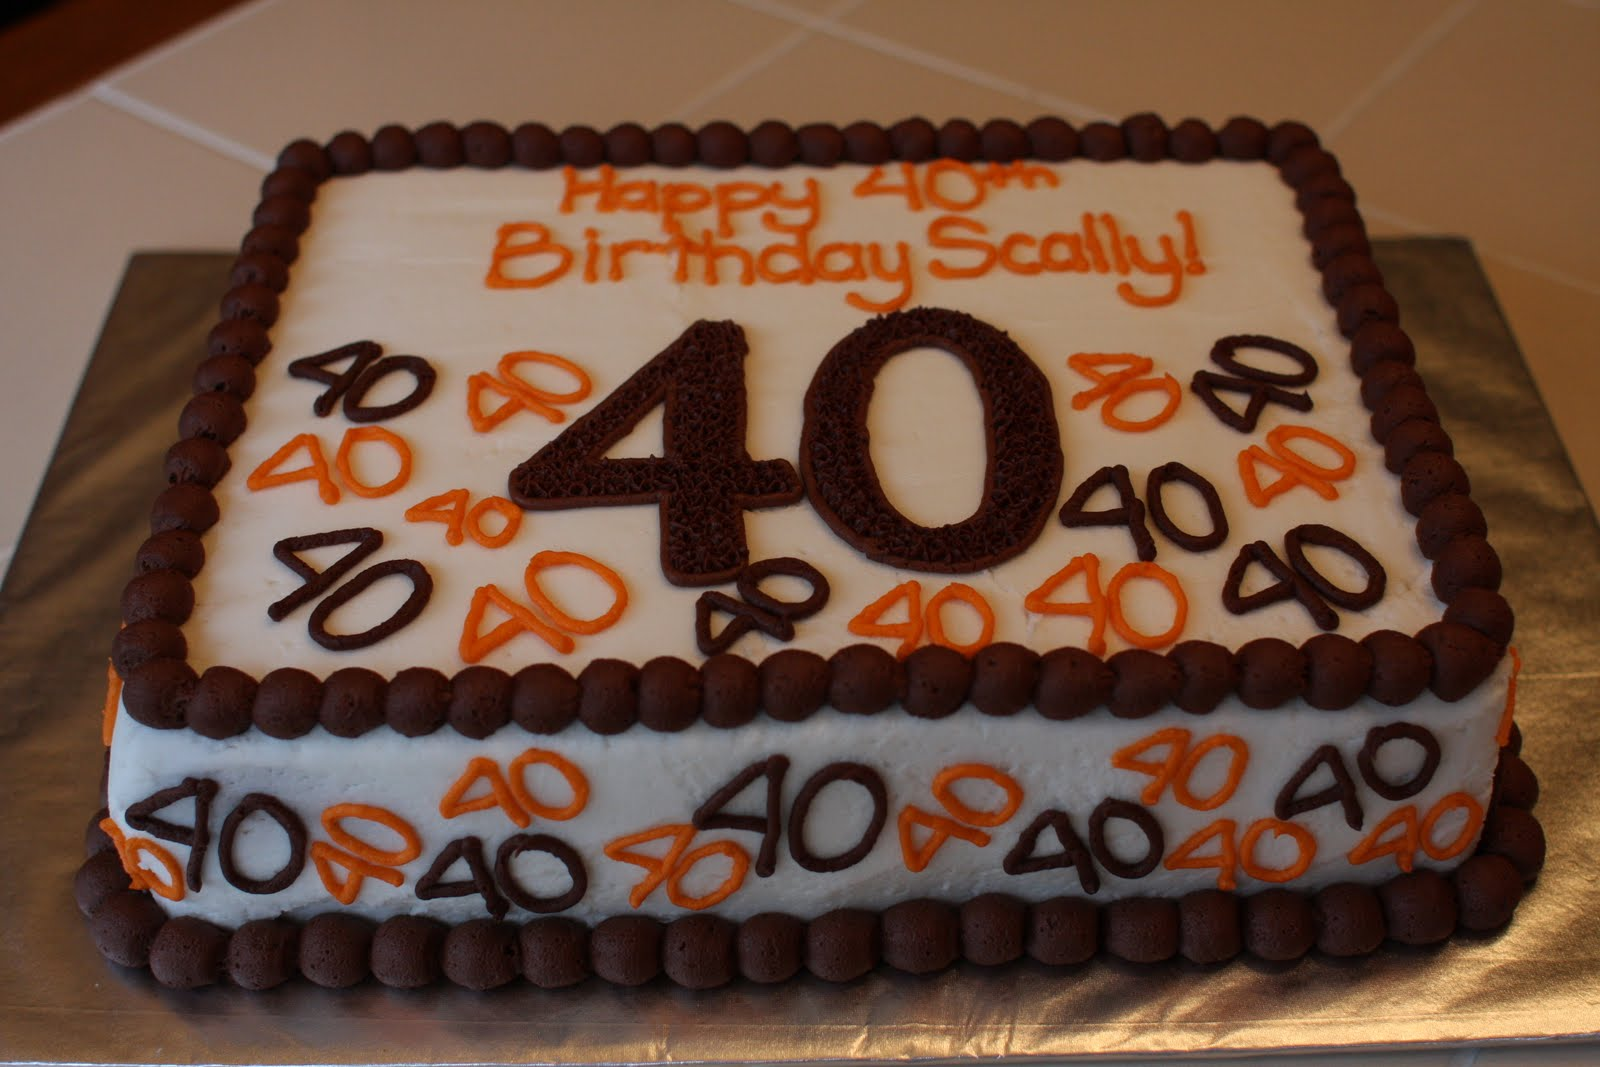 The Buttercream Bakery 40th Birthday Cake